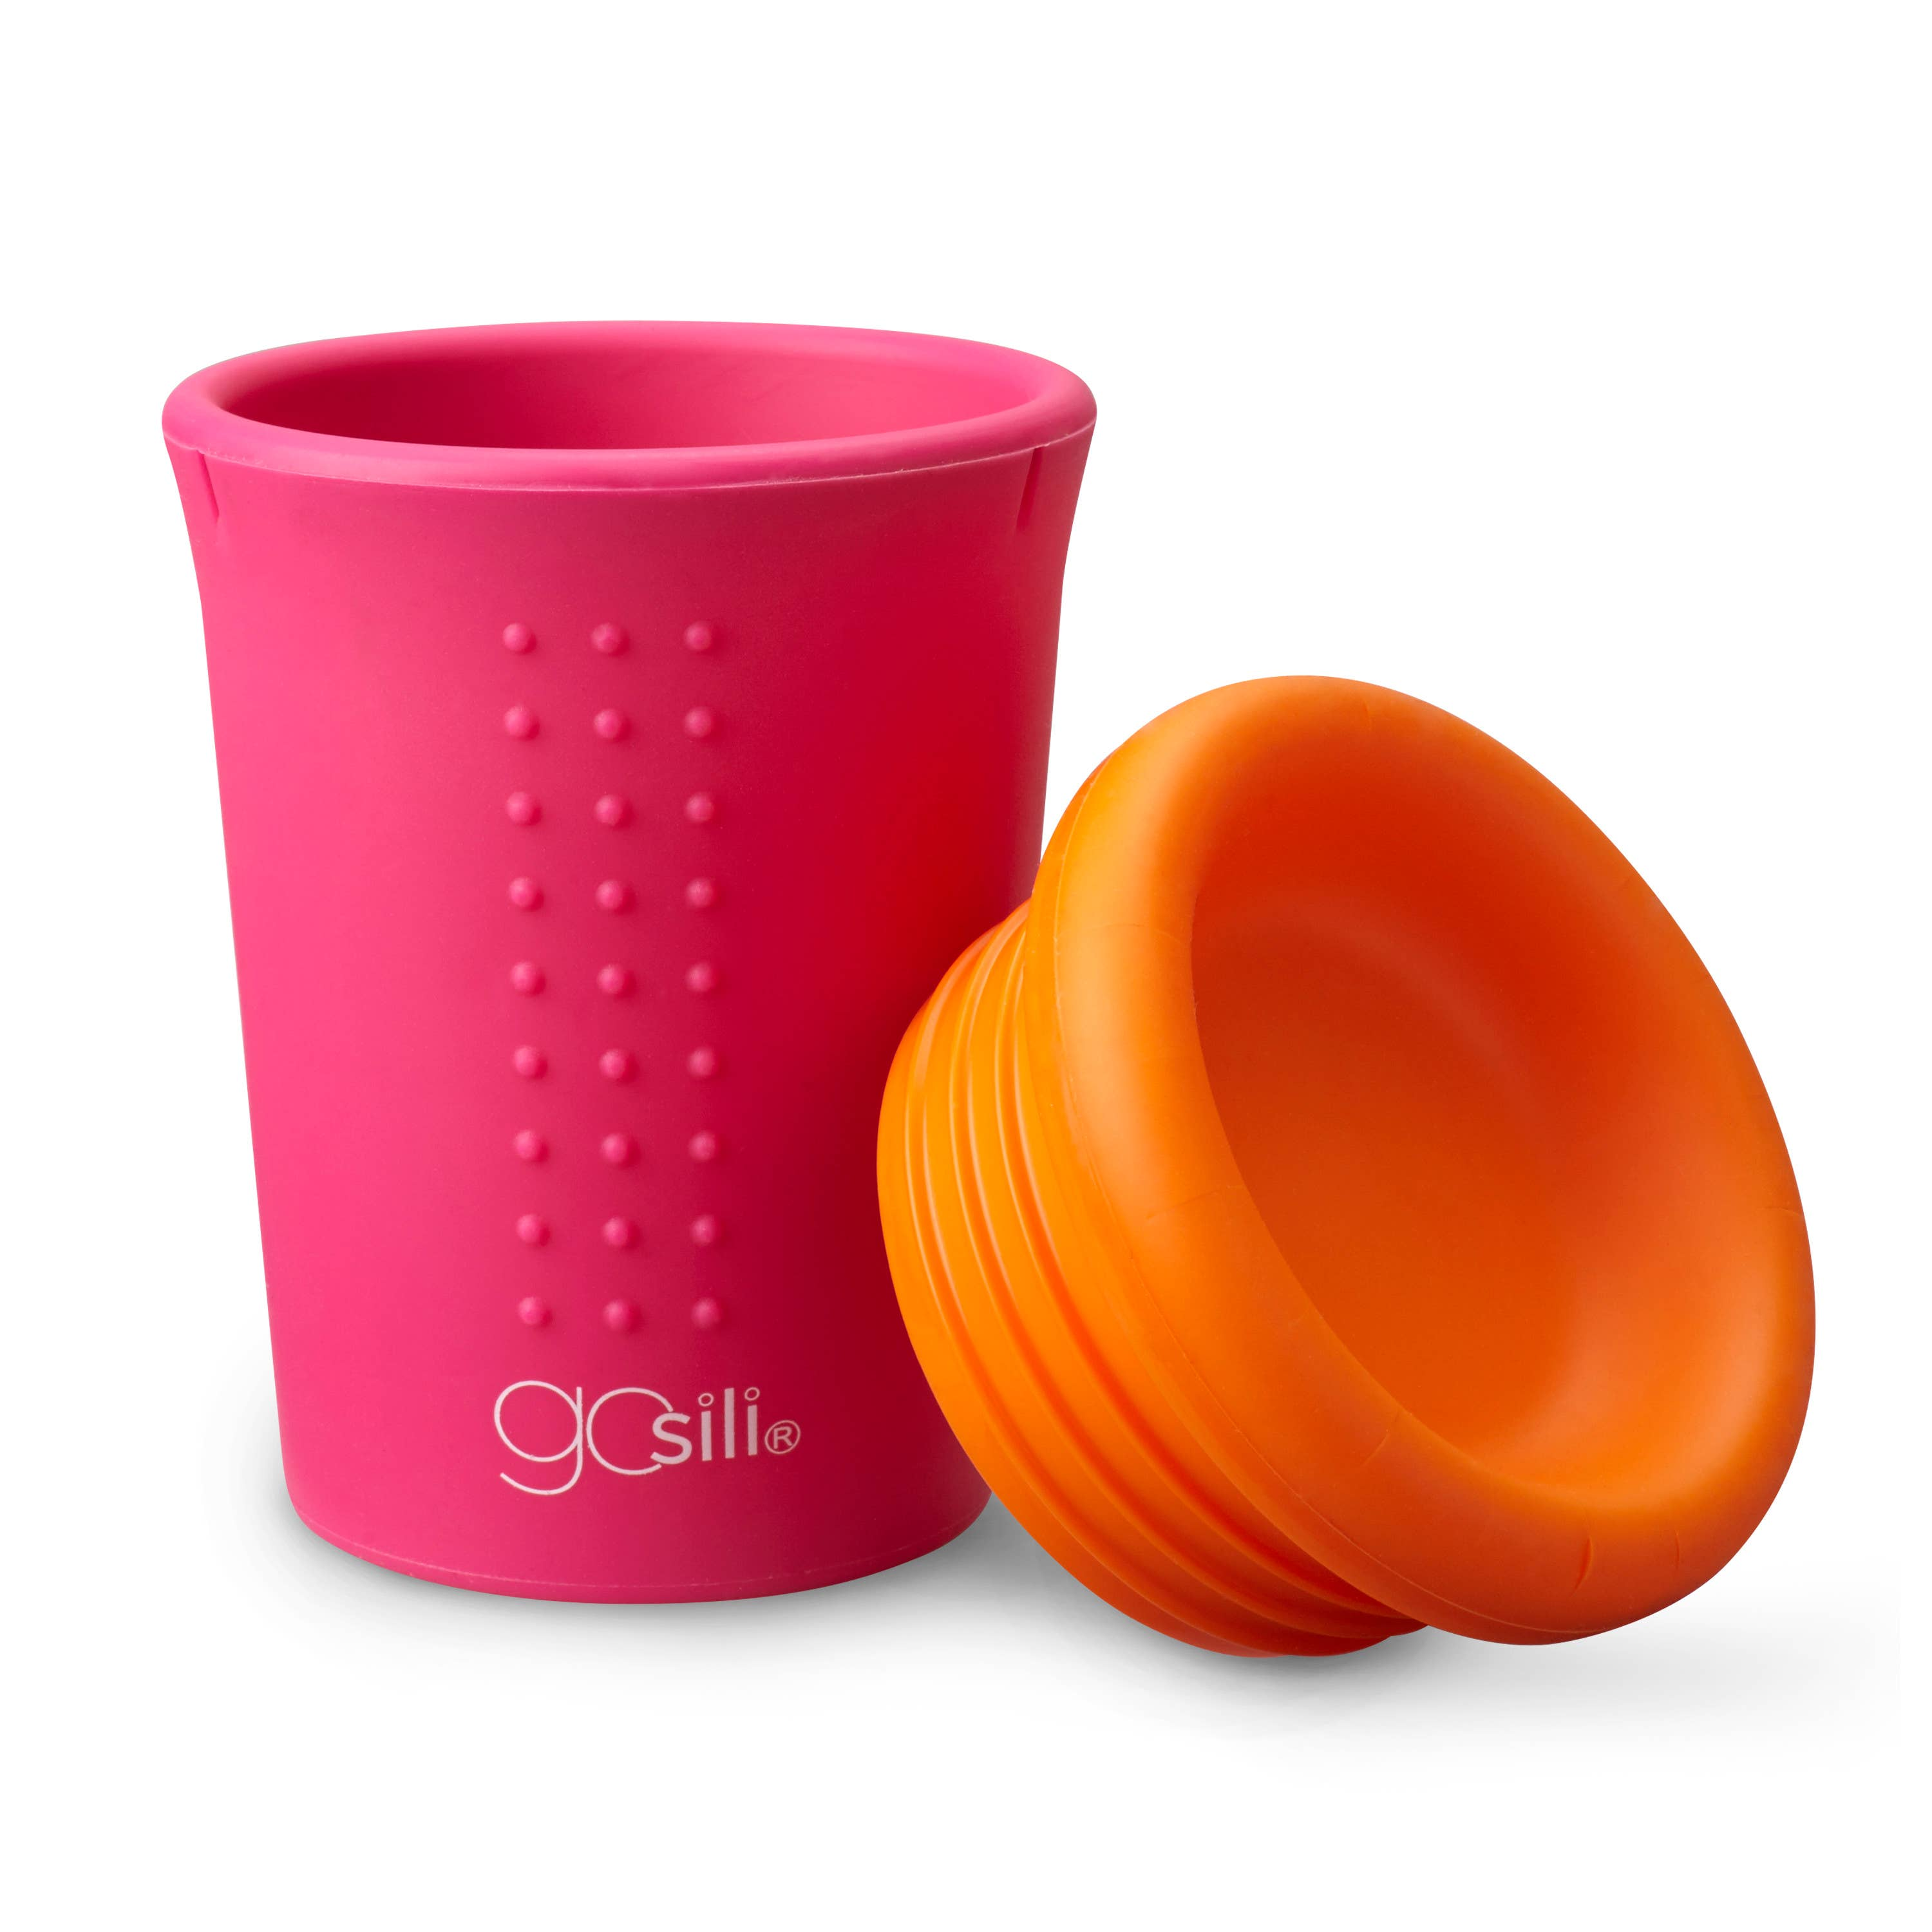 GoSili - Oh! No Spill Cup